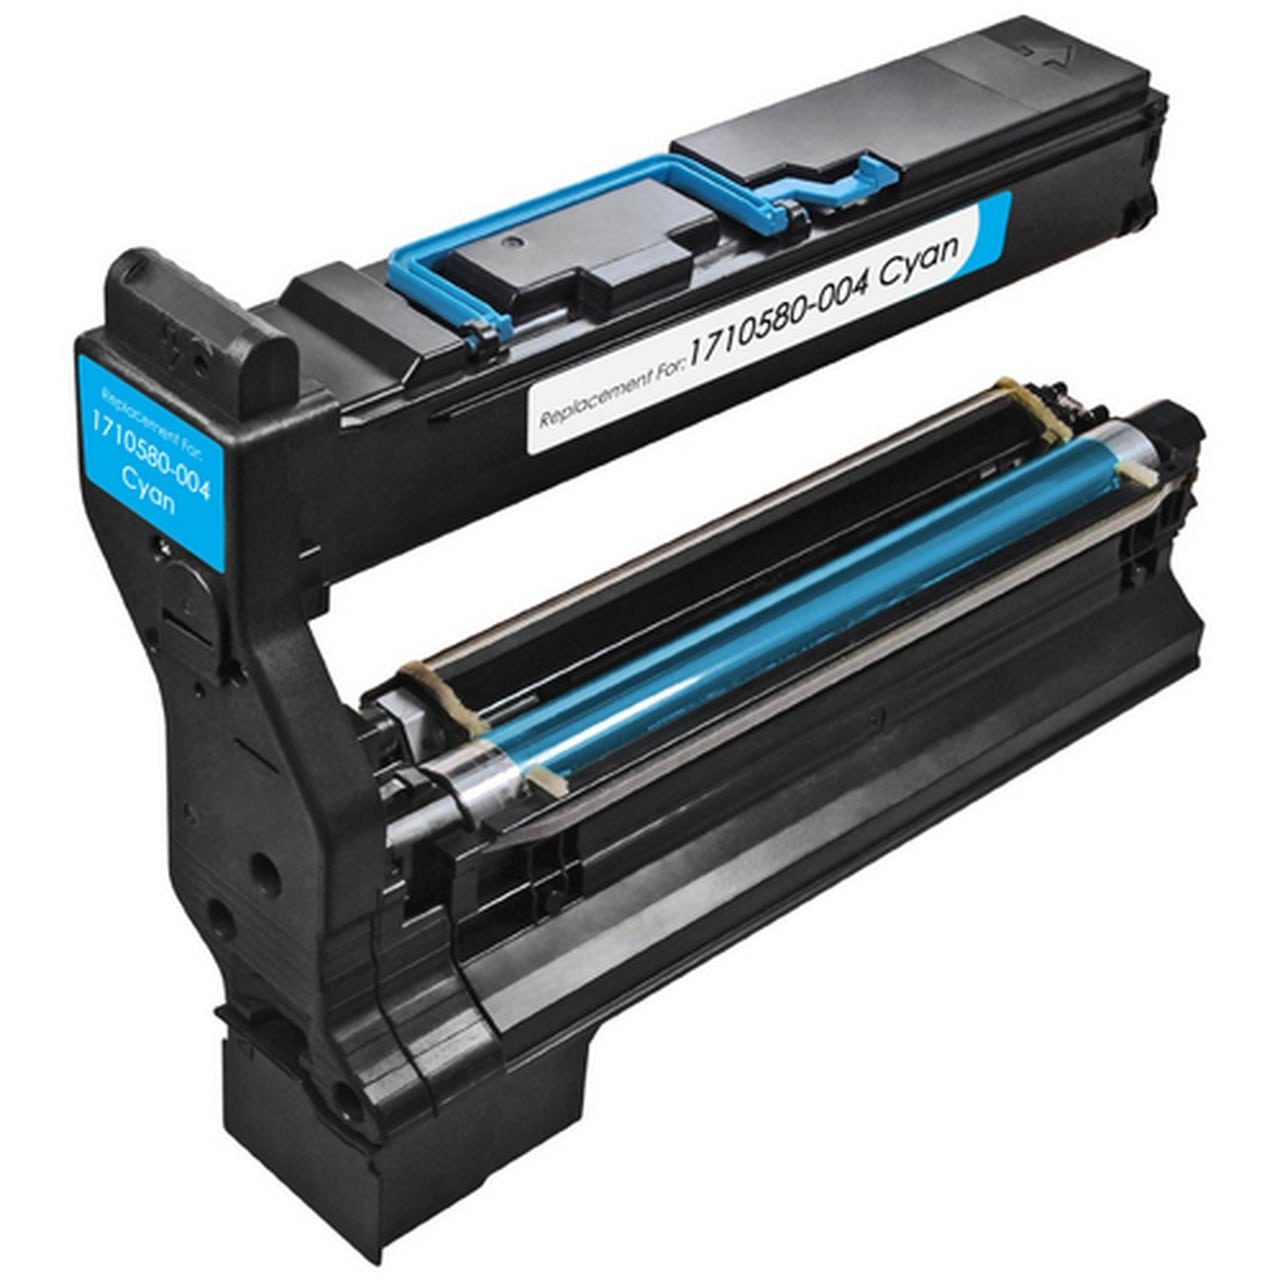 1710580-004 Toner Cartridge - Konica-Minolta Remanufactured (Cyan)